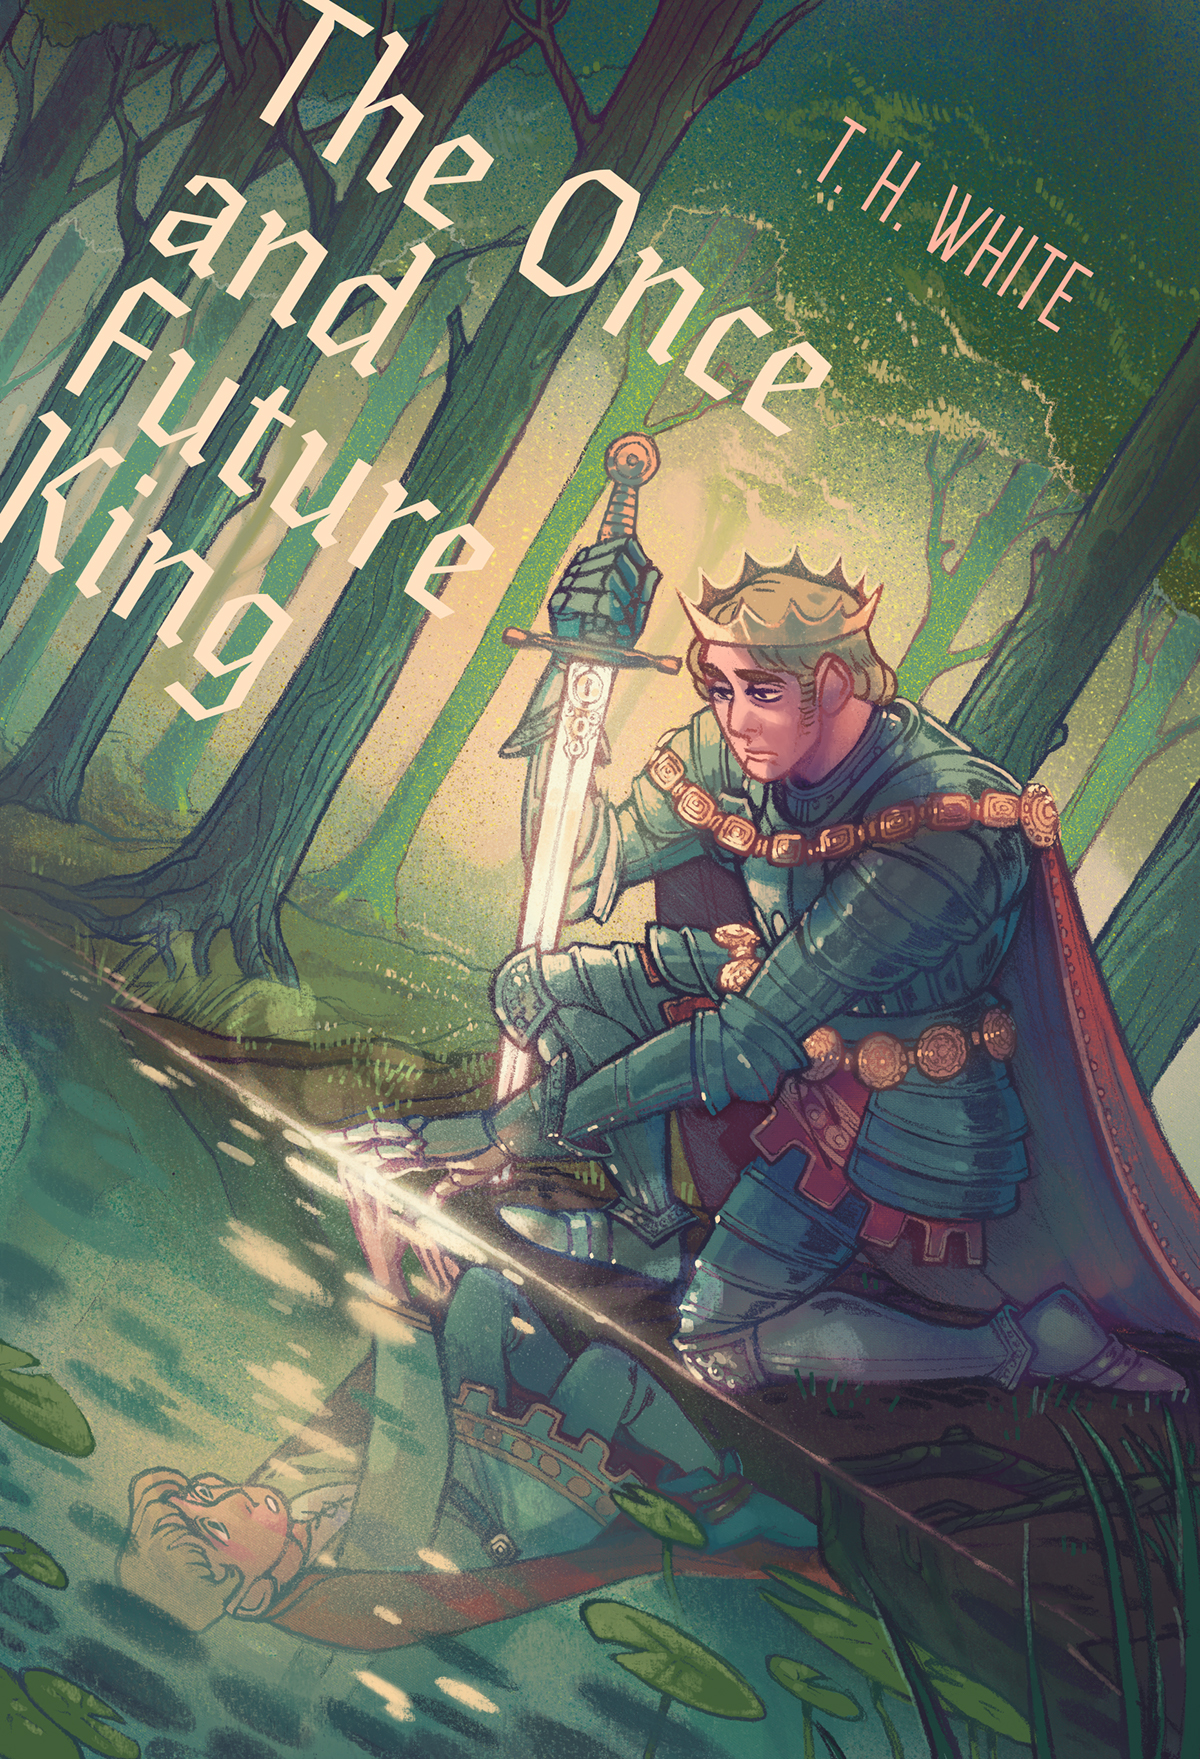 Illustrated Book Cover Photo ~ The once and future king illustrated book cover on behance